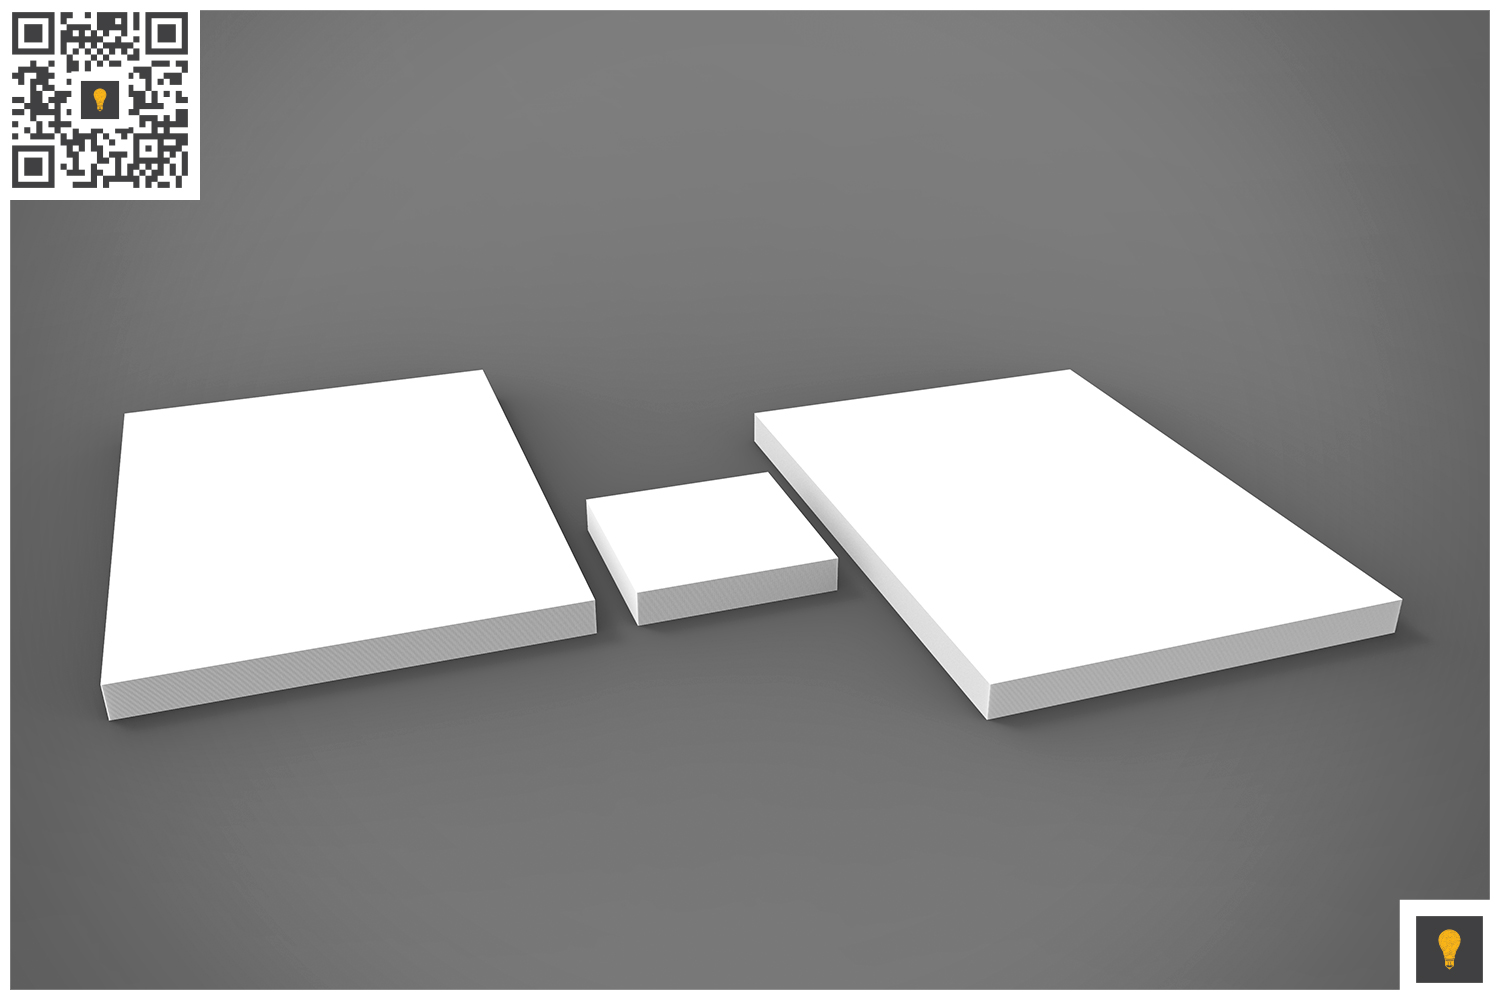 Branding Stationary 3D Render example image 14